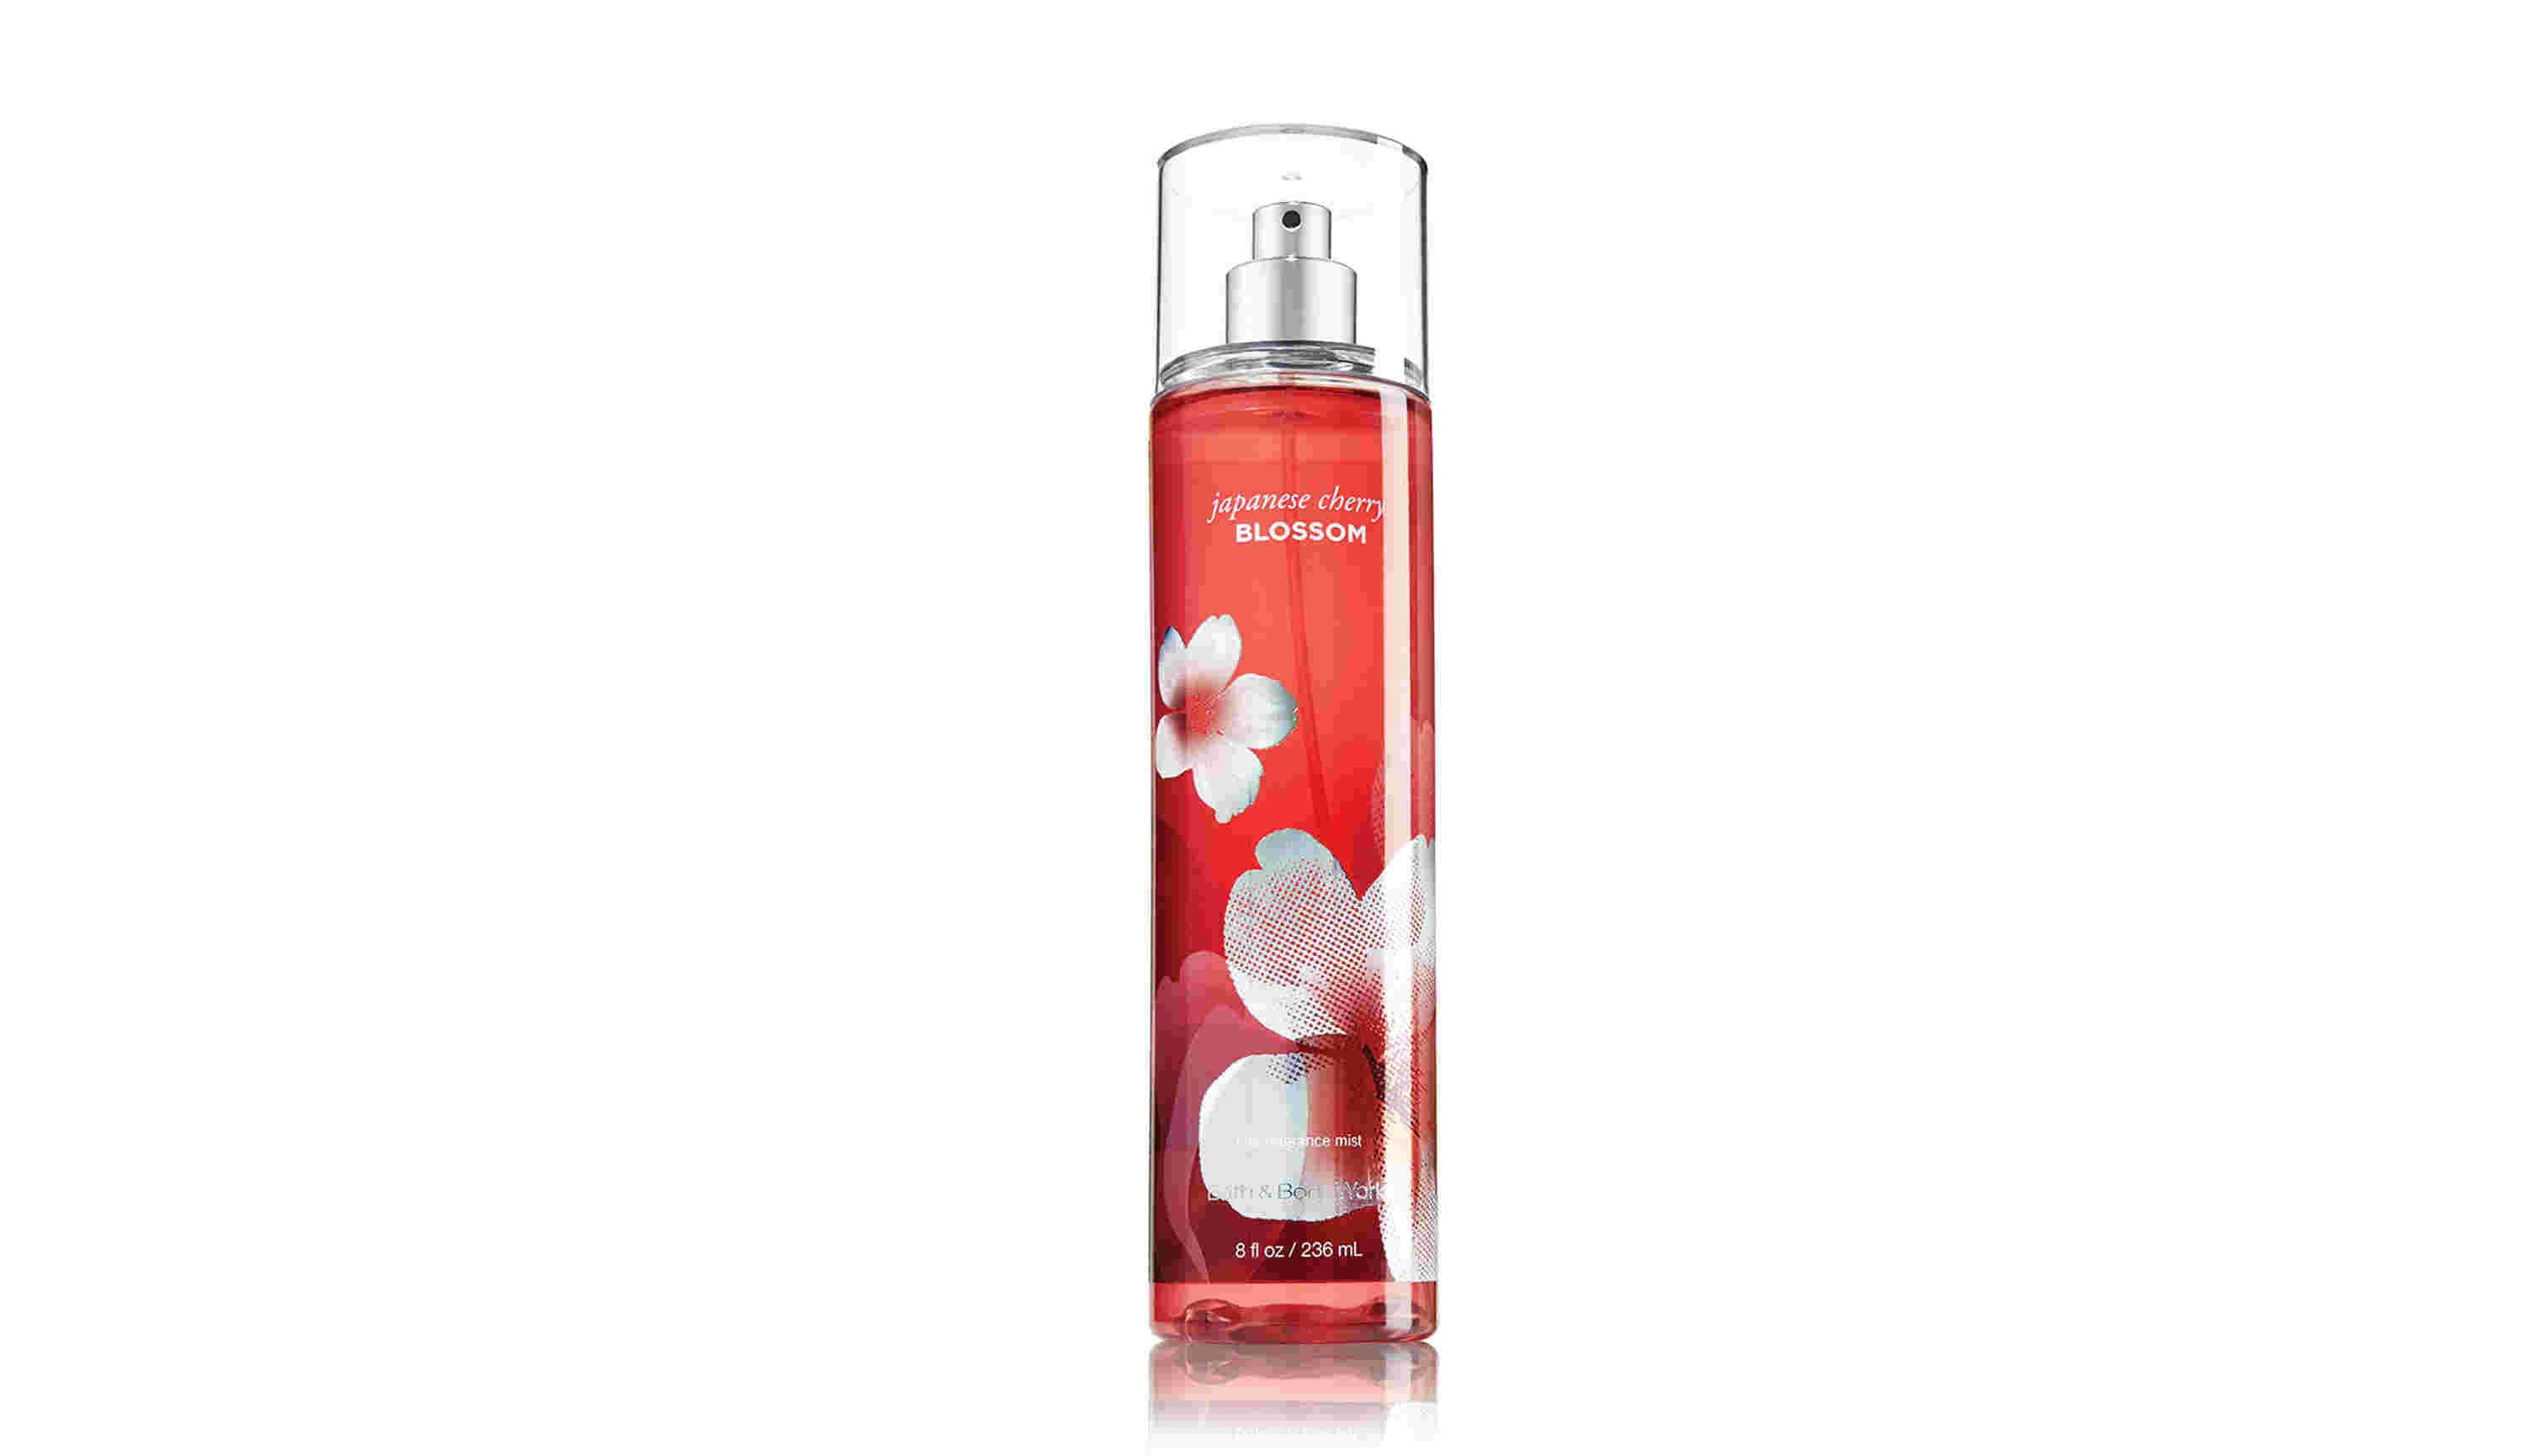 Japanese Cherry Blossom Full Size Bottle Mist